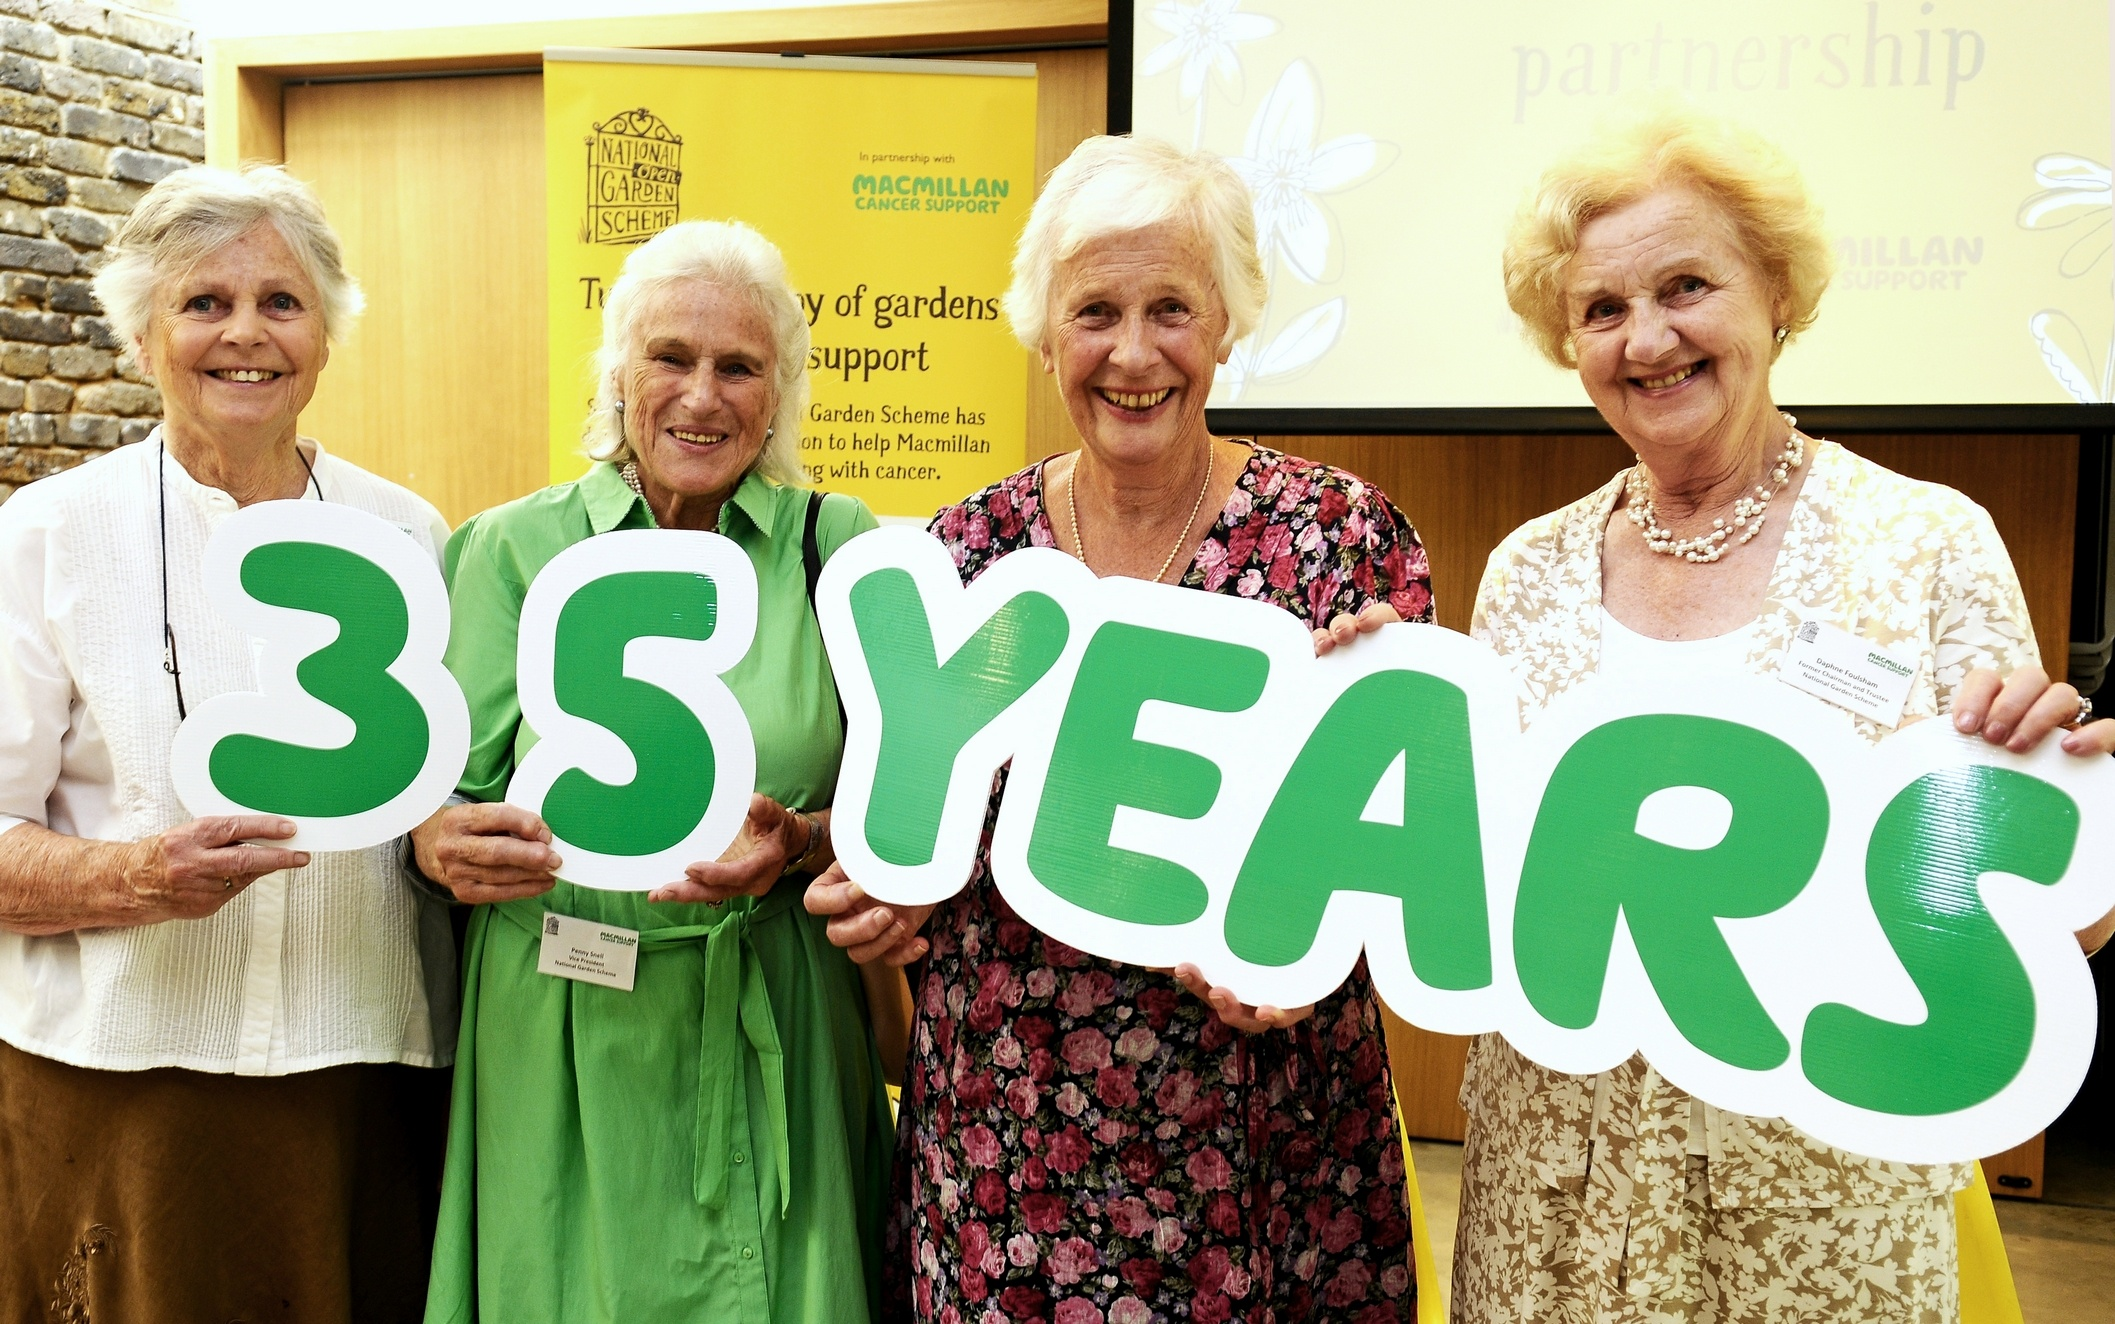 35 years of Macmillan Cancer Support and the National Gardens Scheme's partnership